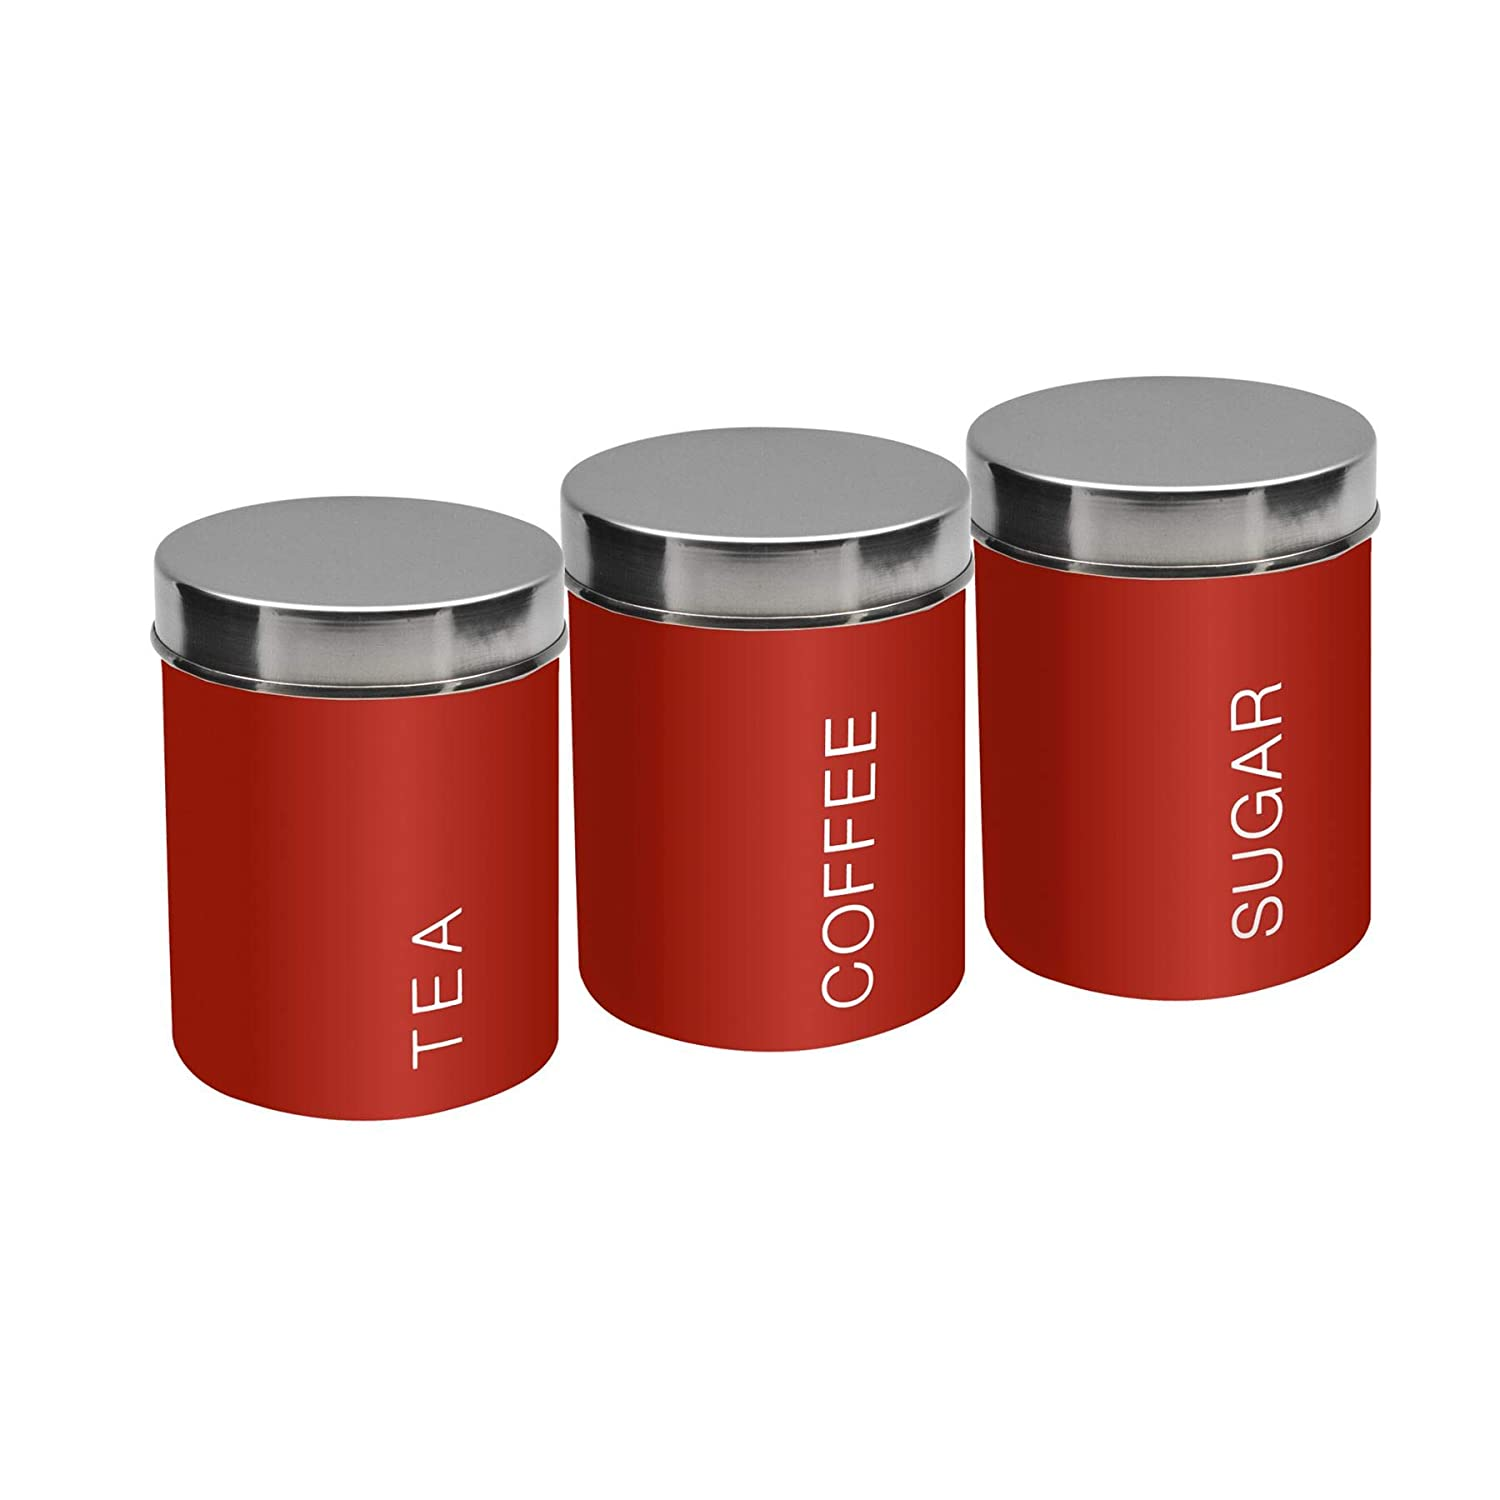 Harbour Housewares Metal Tea Coffee Sugar Canisters Set of 3 - Red - 95mm x 130mm